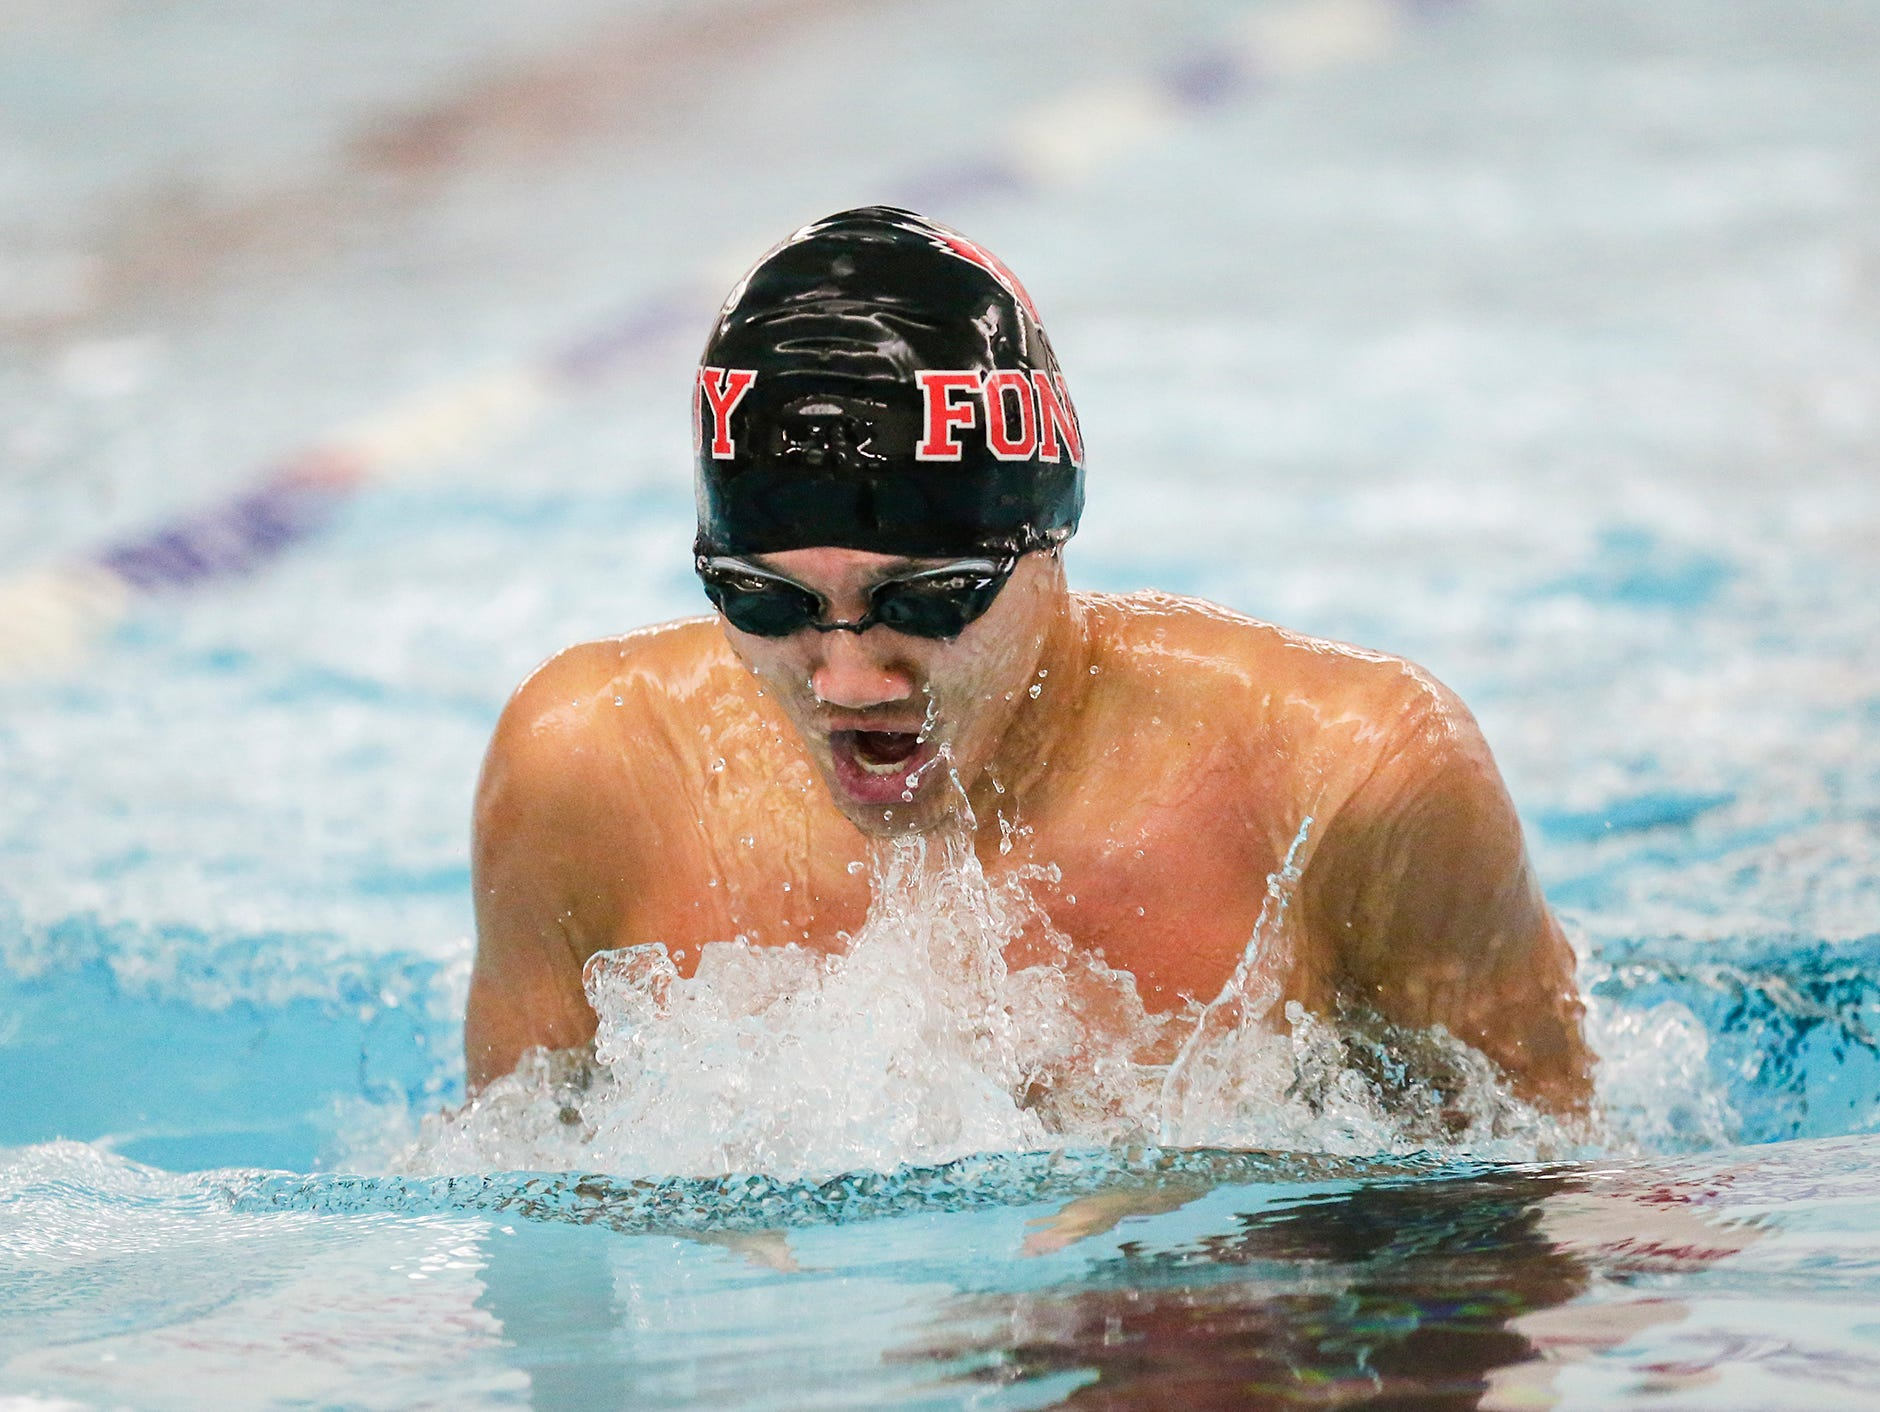 Fond du Lac High School's Andrew Park competes in the 200 yard IM against Neenah High School during their swim meet Tuesday, December 11, 2018 in Fond du Lac, Wisconsin. Doug Raflik/USA TODAY NETWORK-Wisconsin